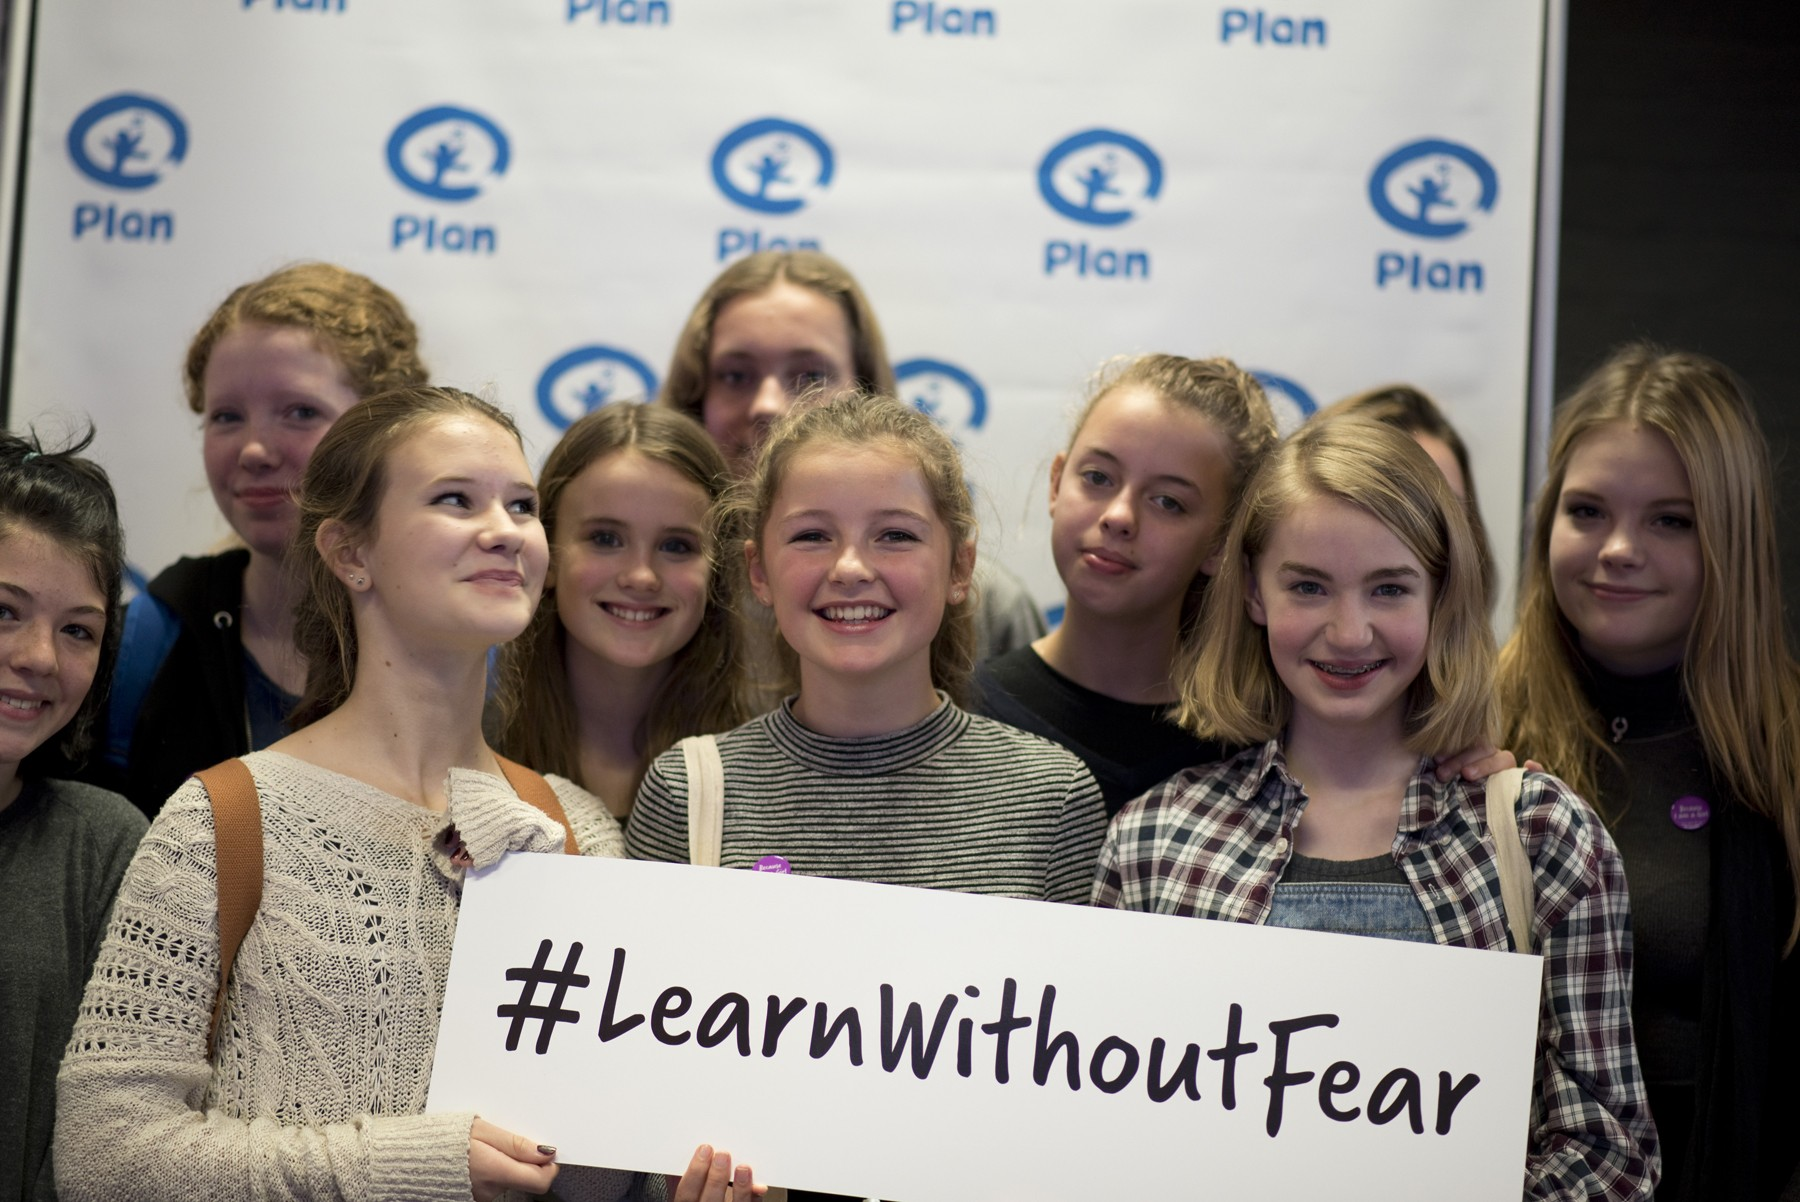 Group hold up a #LearnWithoutFear sign at Youth Action Festival